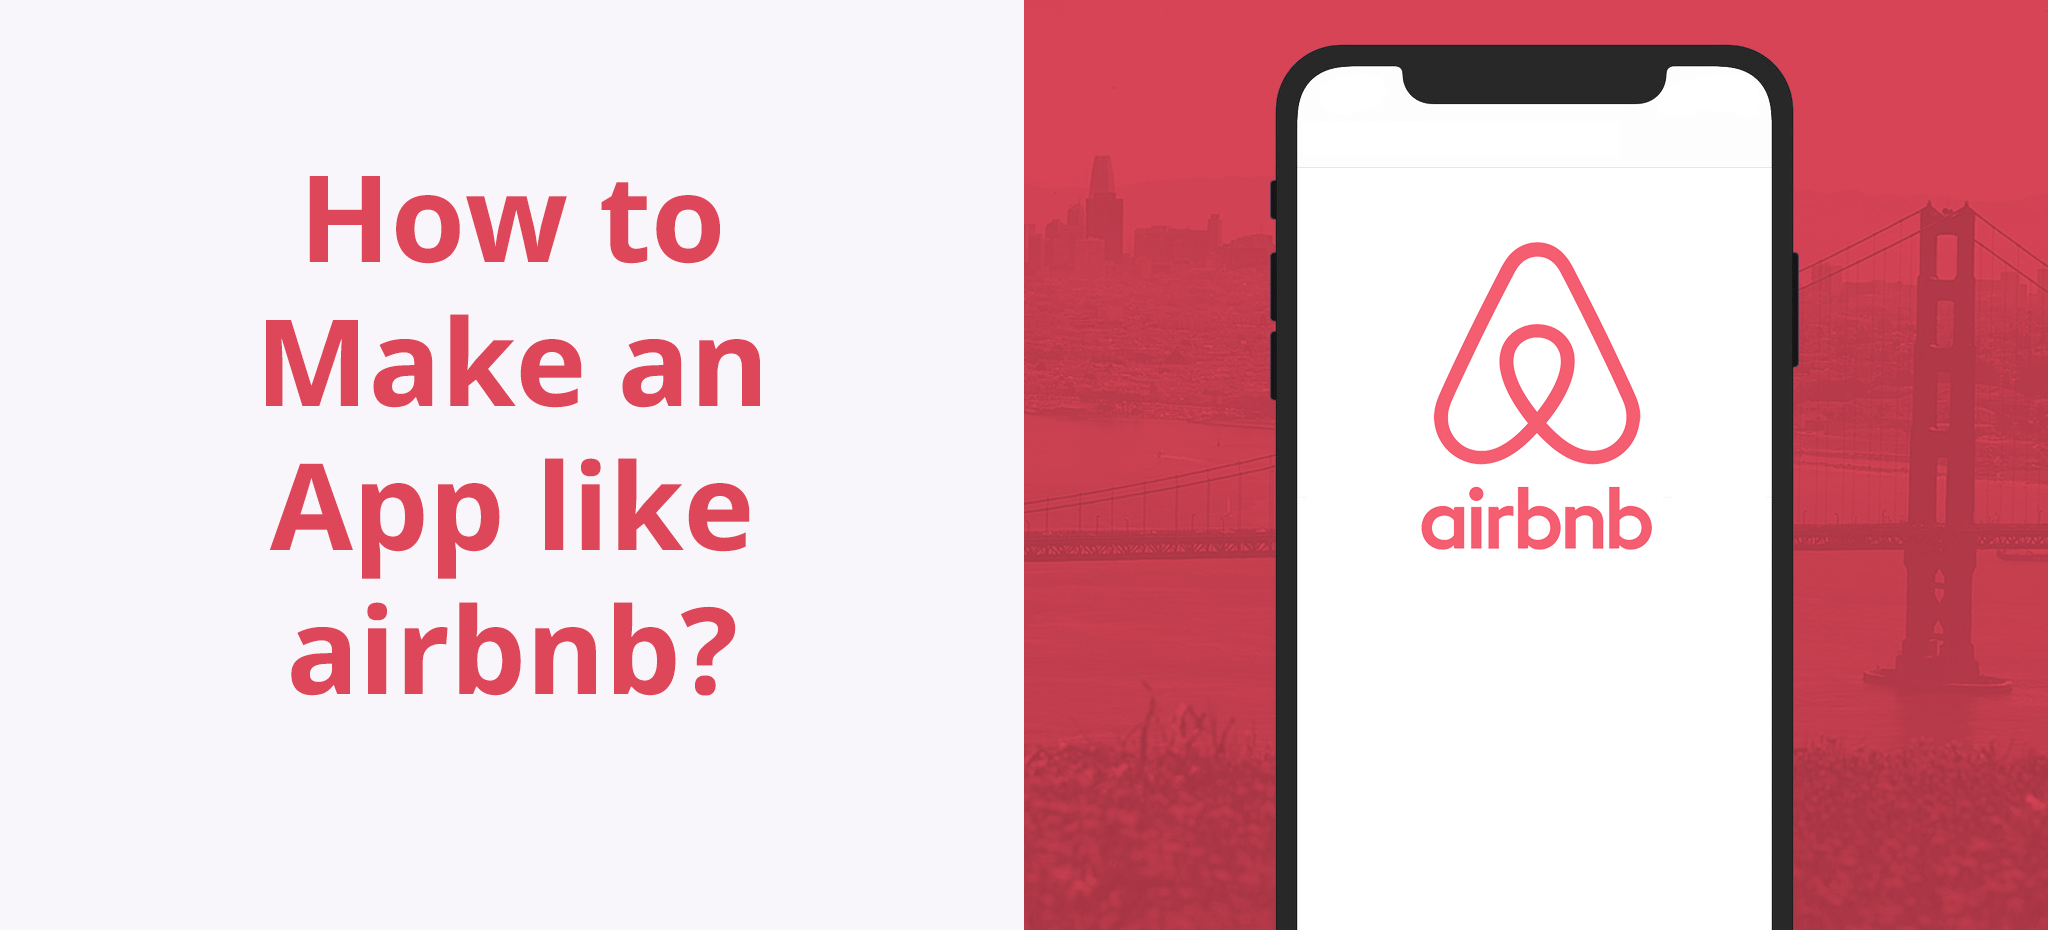 how-to-make-an-app-like-airbnb